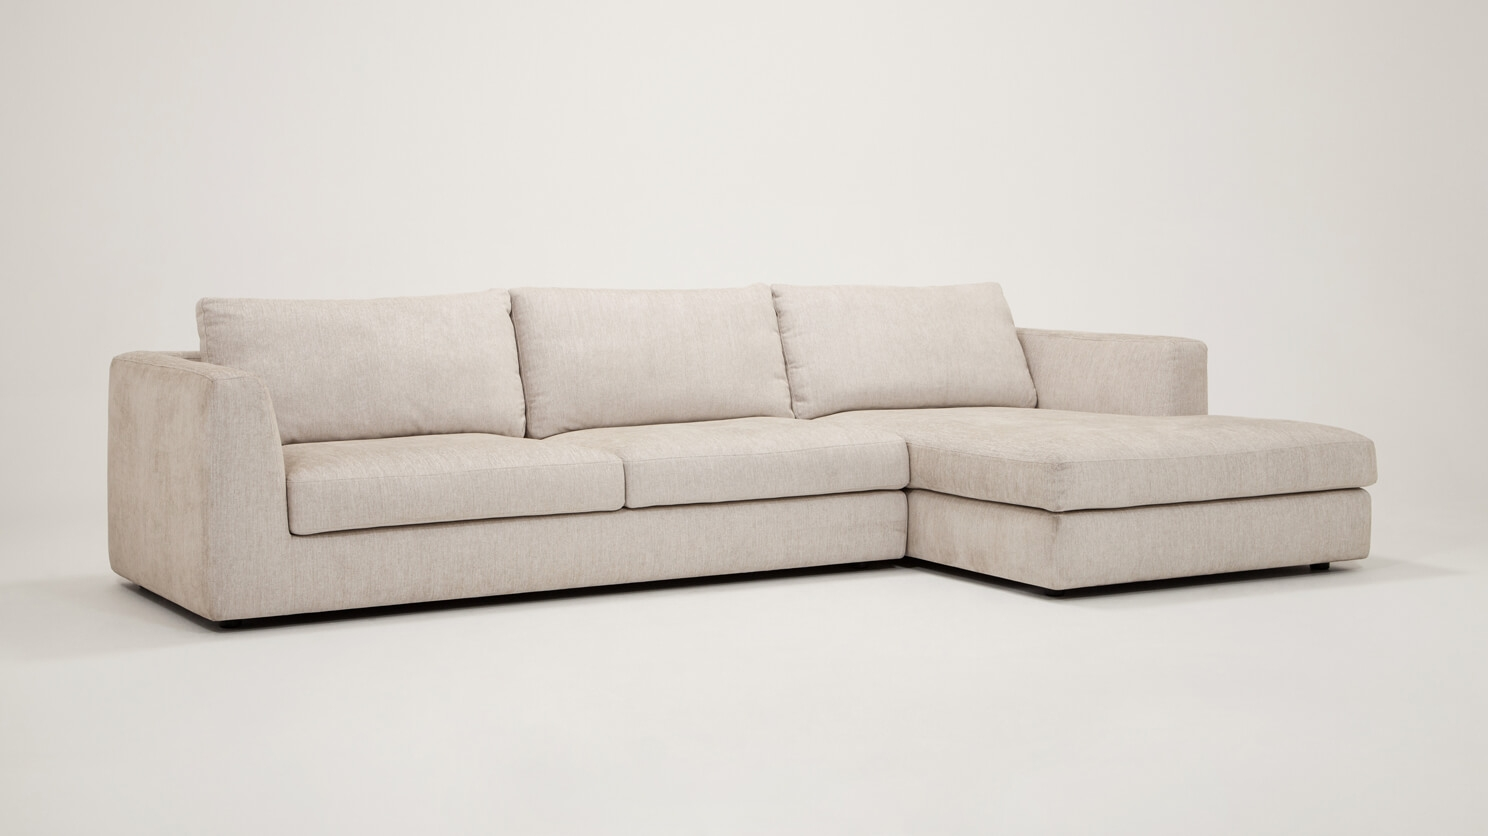 Promo Chaise Cello 2 Piece Sectional Sofa With Chaise Fabric Eq3